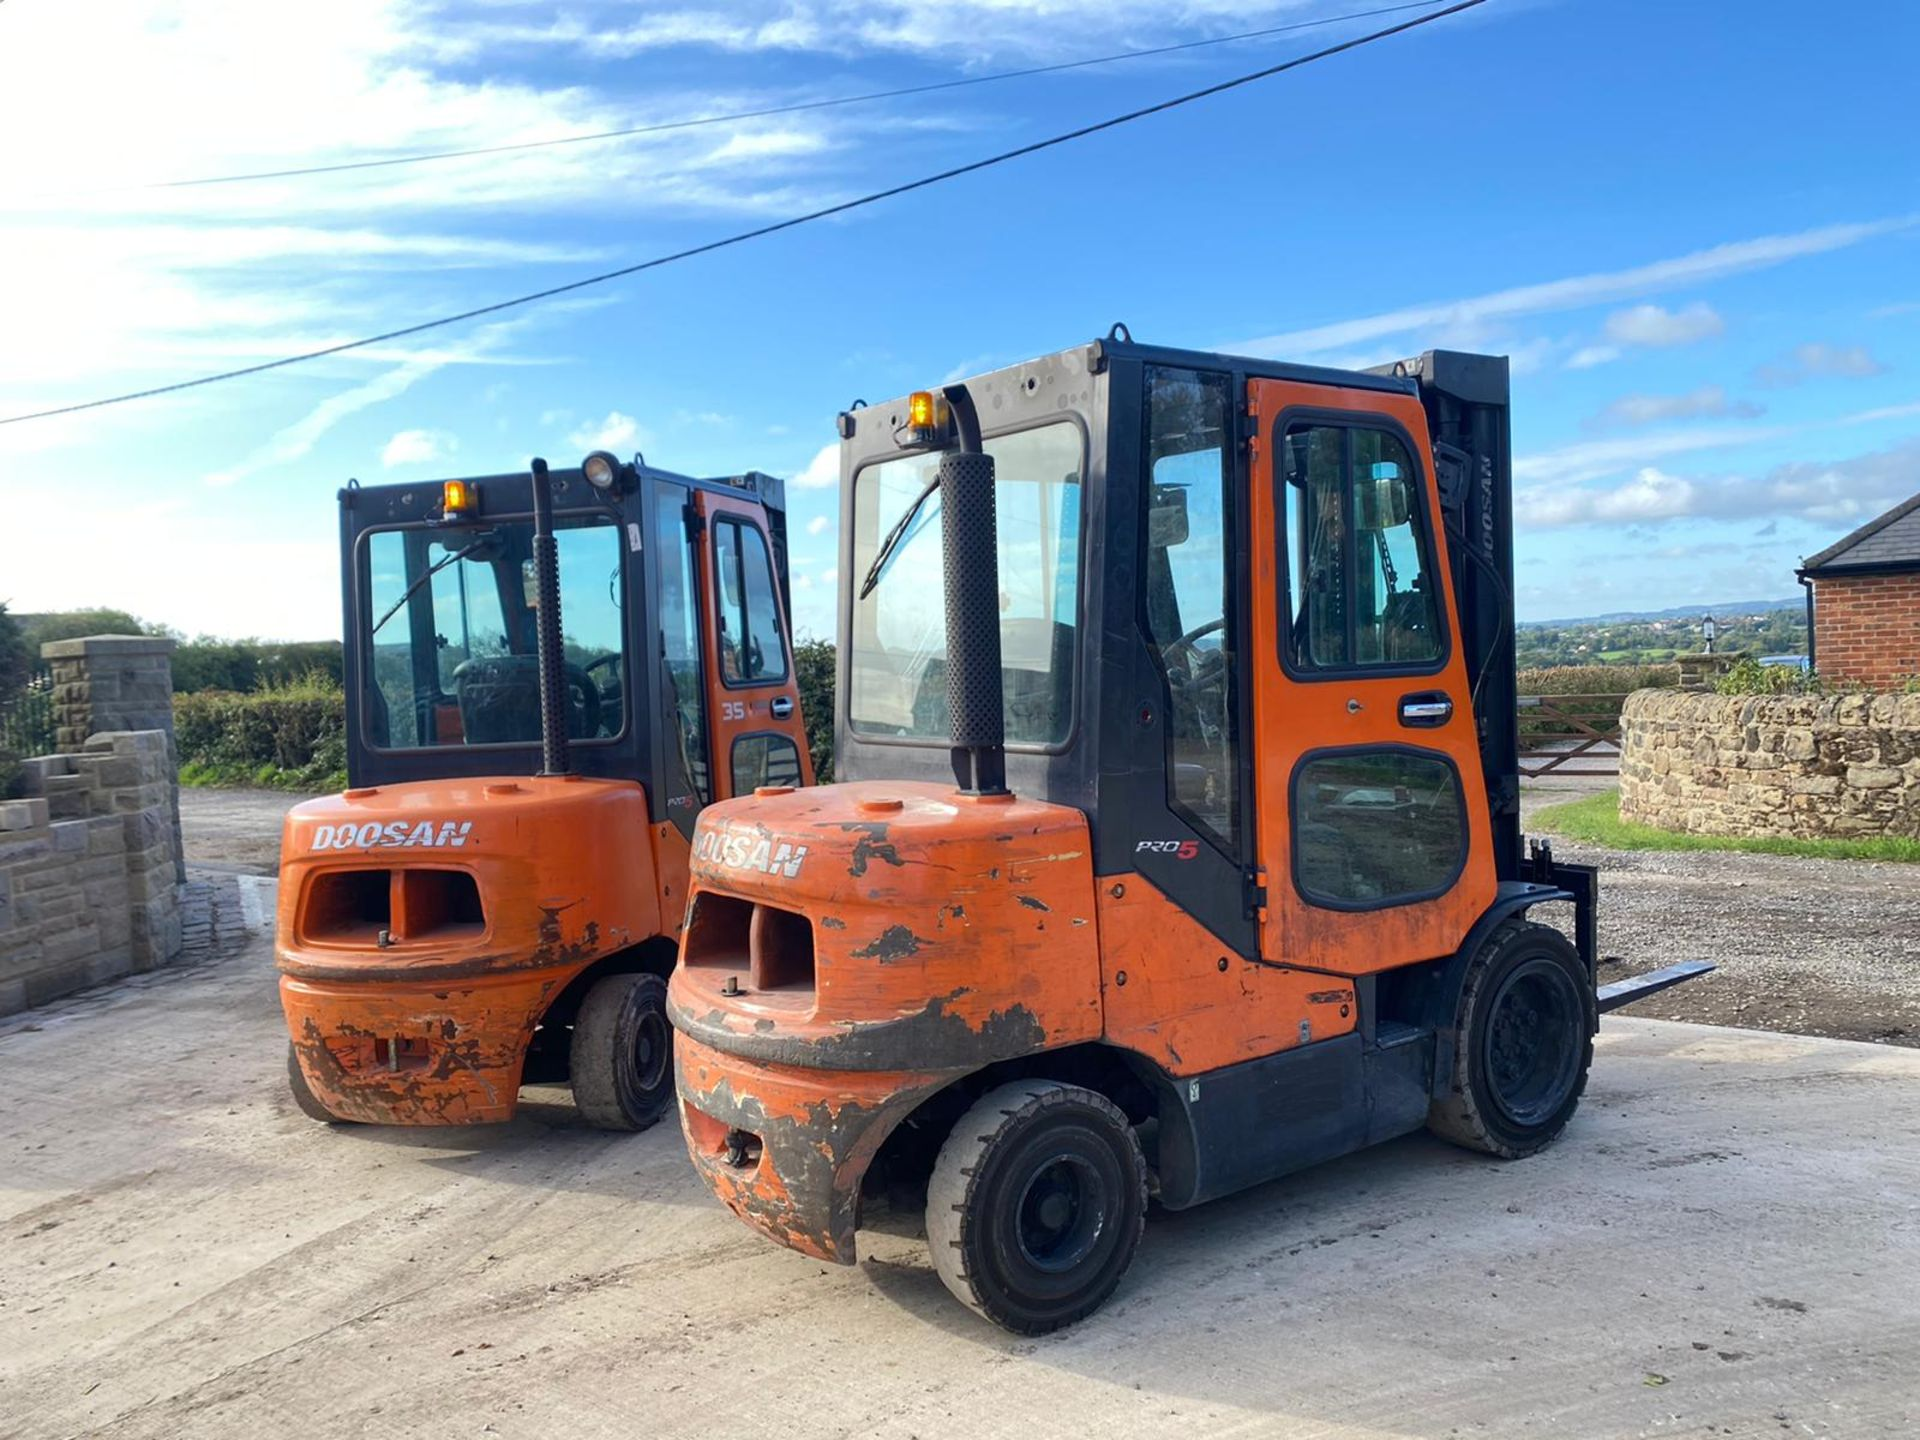 Lot 73 - DOOSAN D3.5C-5 3 TON FORKLIFT, FULL GLASS CAB, YEAR 2012, IN GOOD CONDITION, RUNS, WORKS AND LIFTS